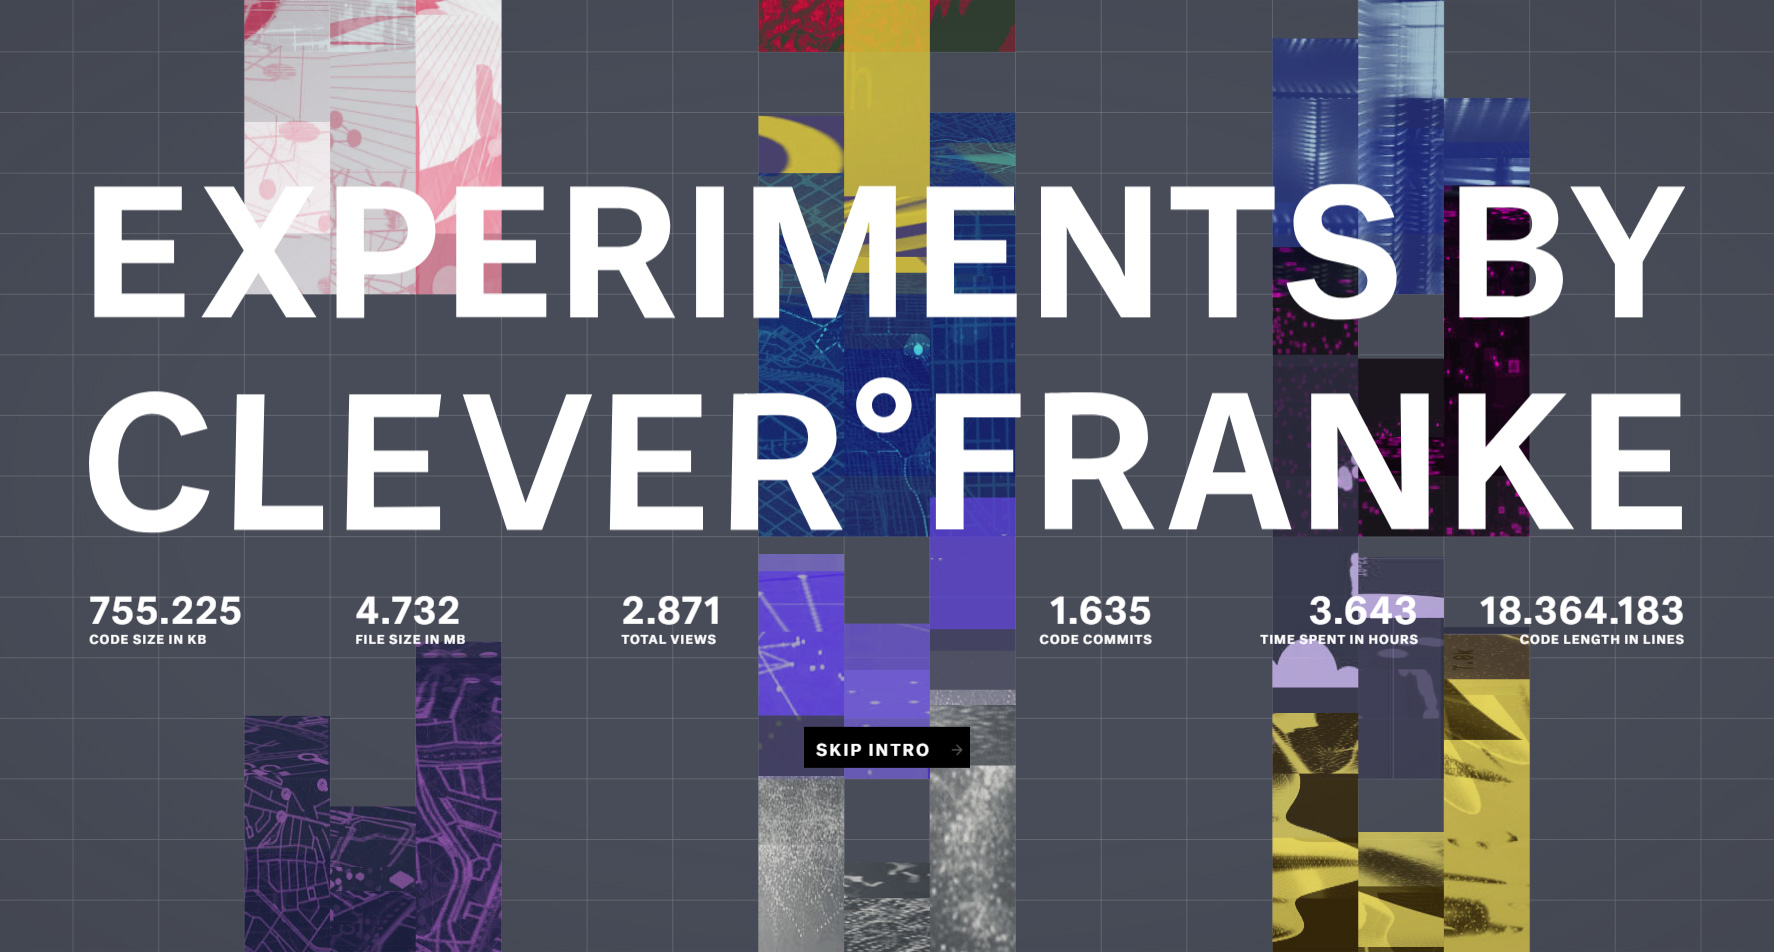 C°F Experiments - Website of the Day